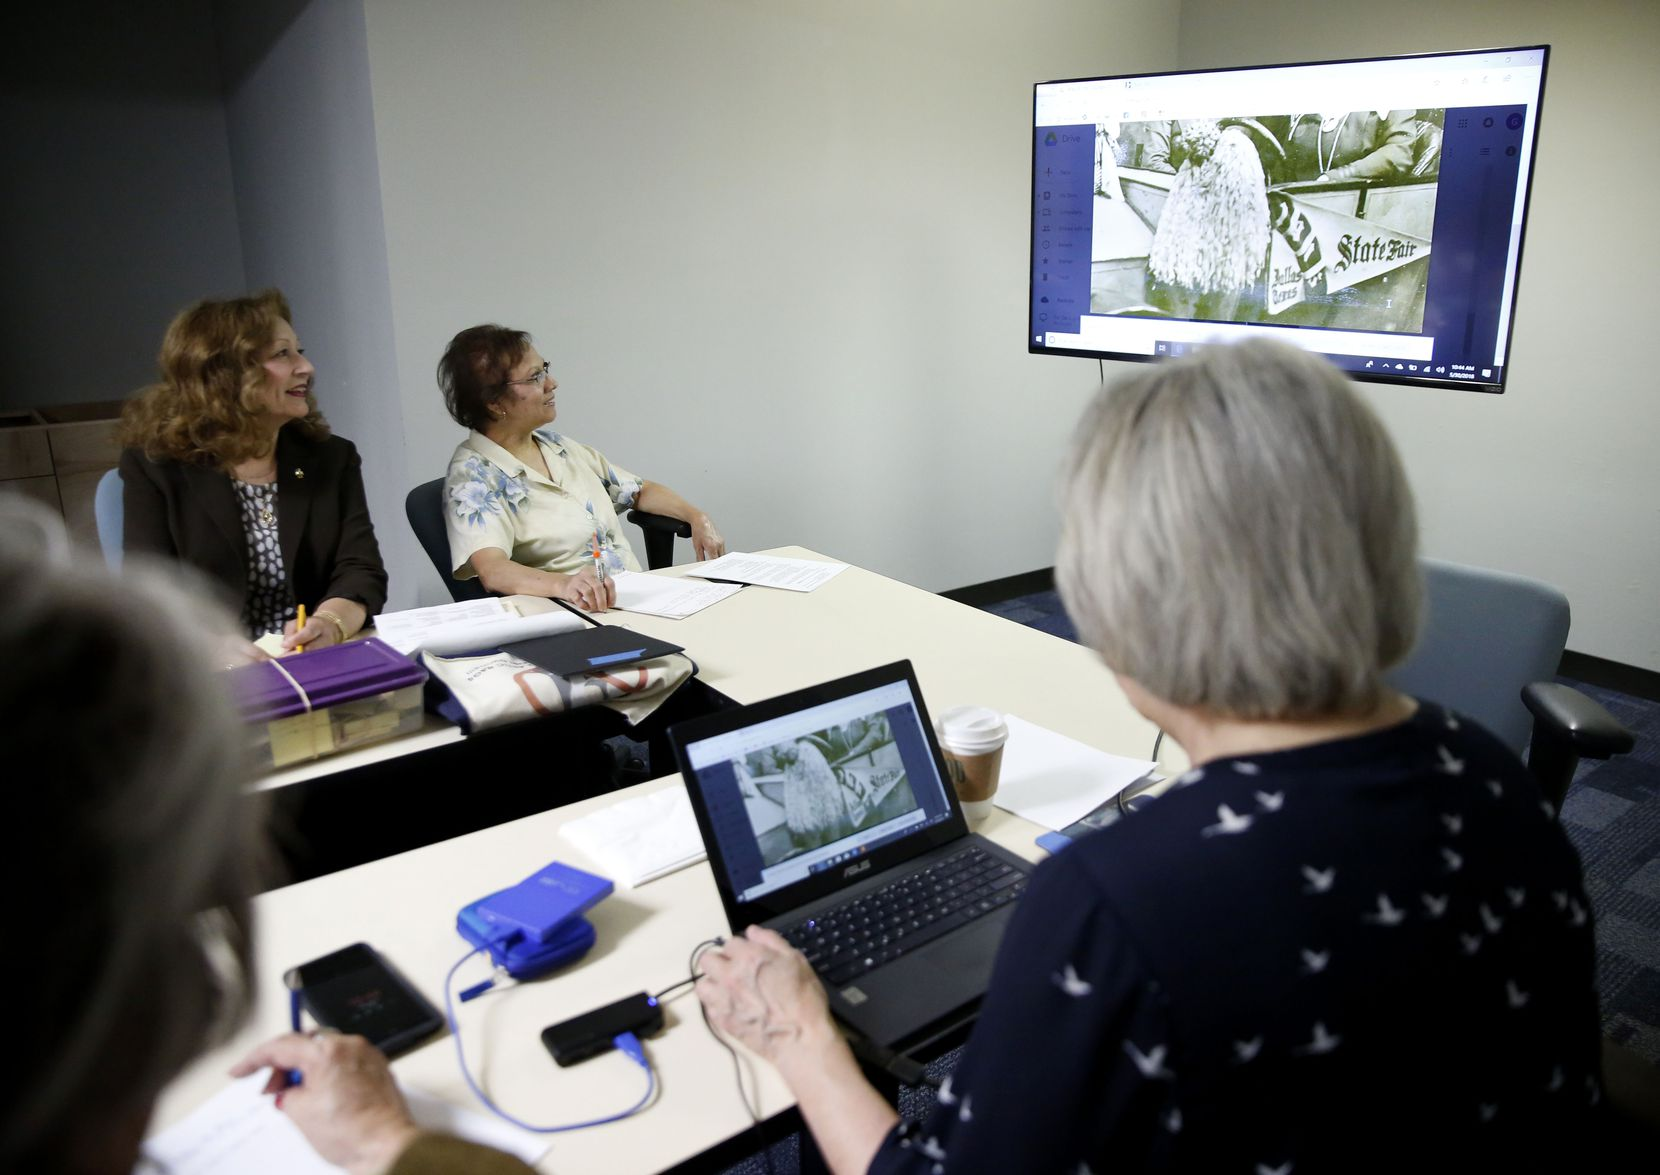 Members of the Dallas Mexican American Historical League sort through archived photos while planning  exhibits for the Latino Cultural Center and State Fair of Texas.